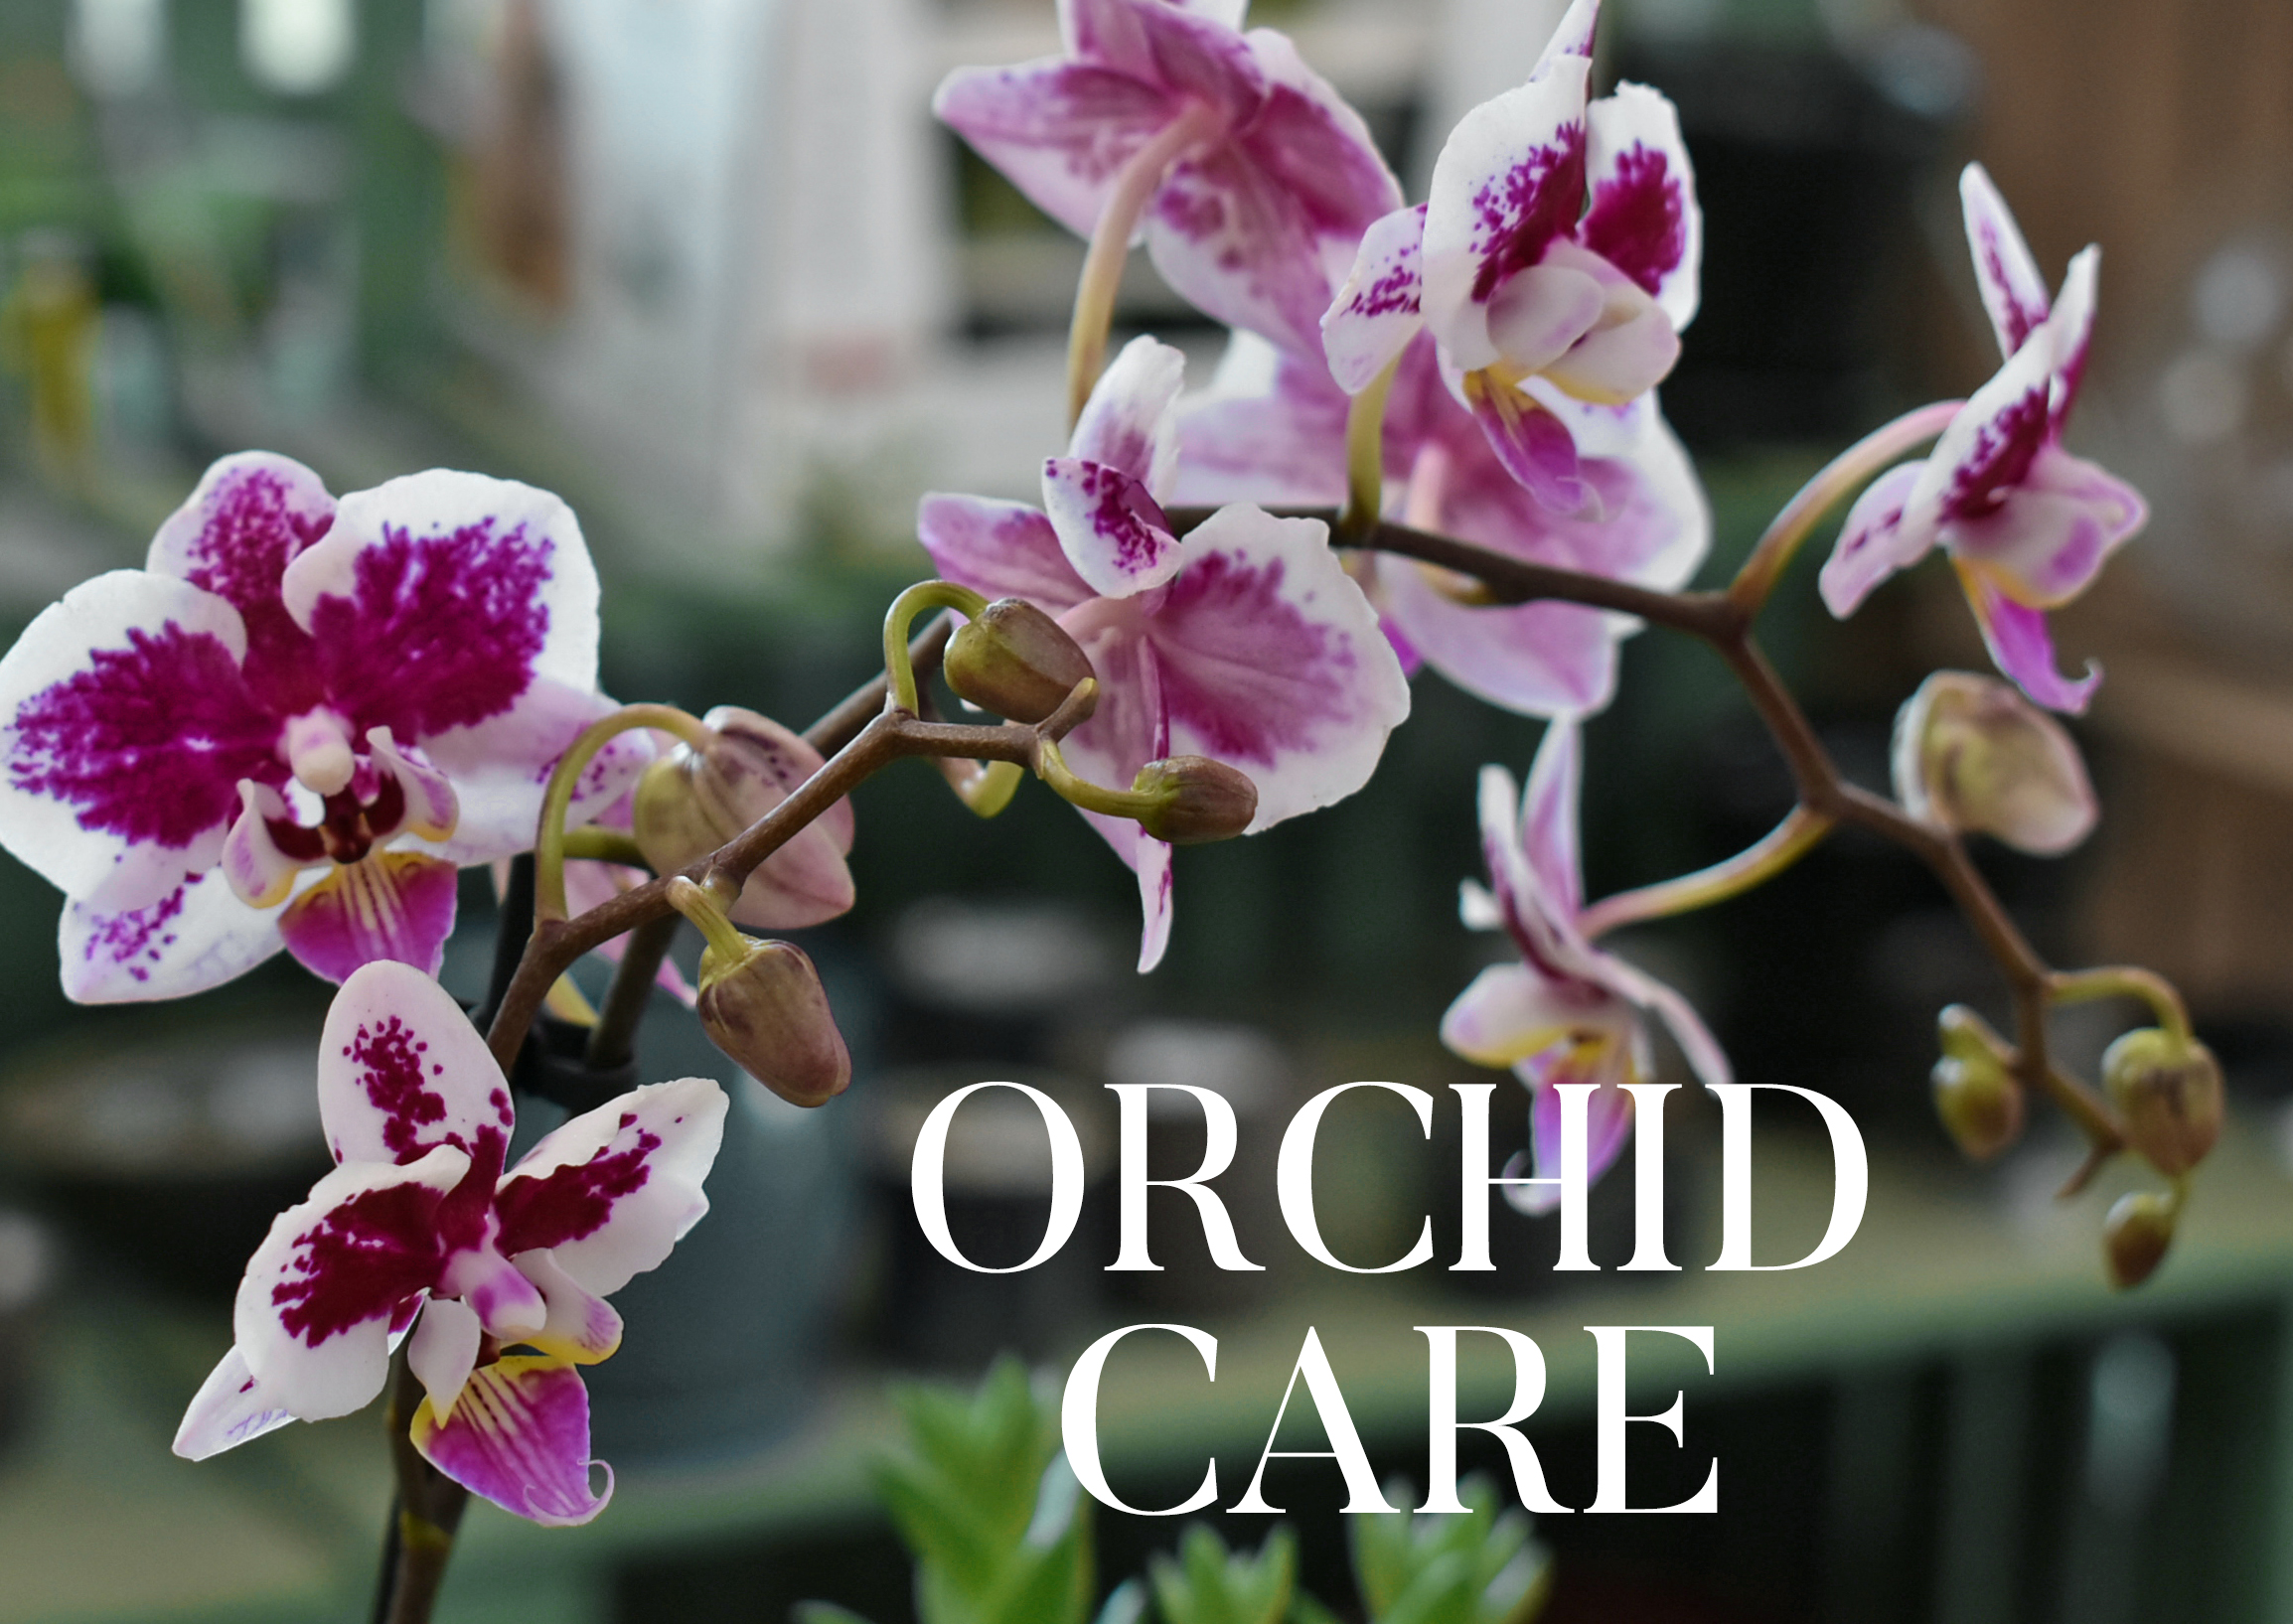 ORCHID CARE website image